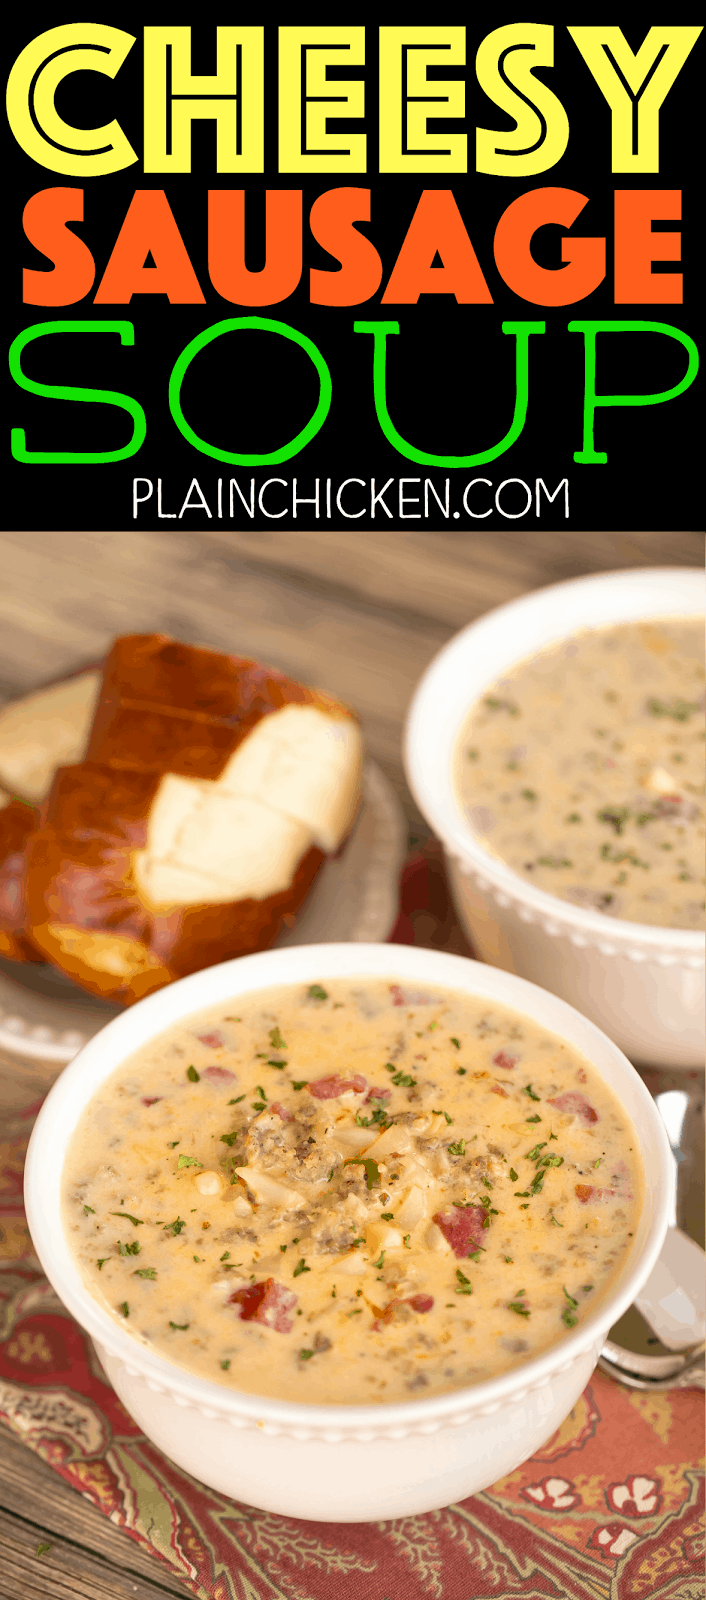 Cheesy Sausage Soup - ready in under 30 minutes! Sausage, chicken broth, diced tomatoes and green chiles, hash browns, corn, Velveeta and sour cream. Everyone LOVED this soup! Serve with some breadsticks for a quick and easy weeknight meal!